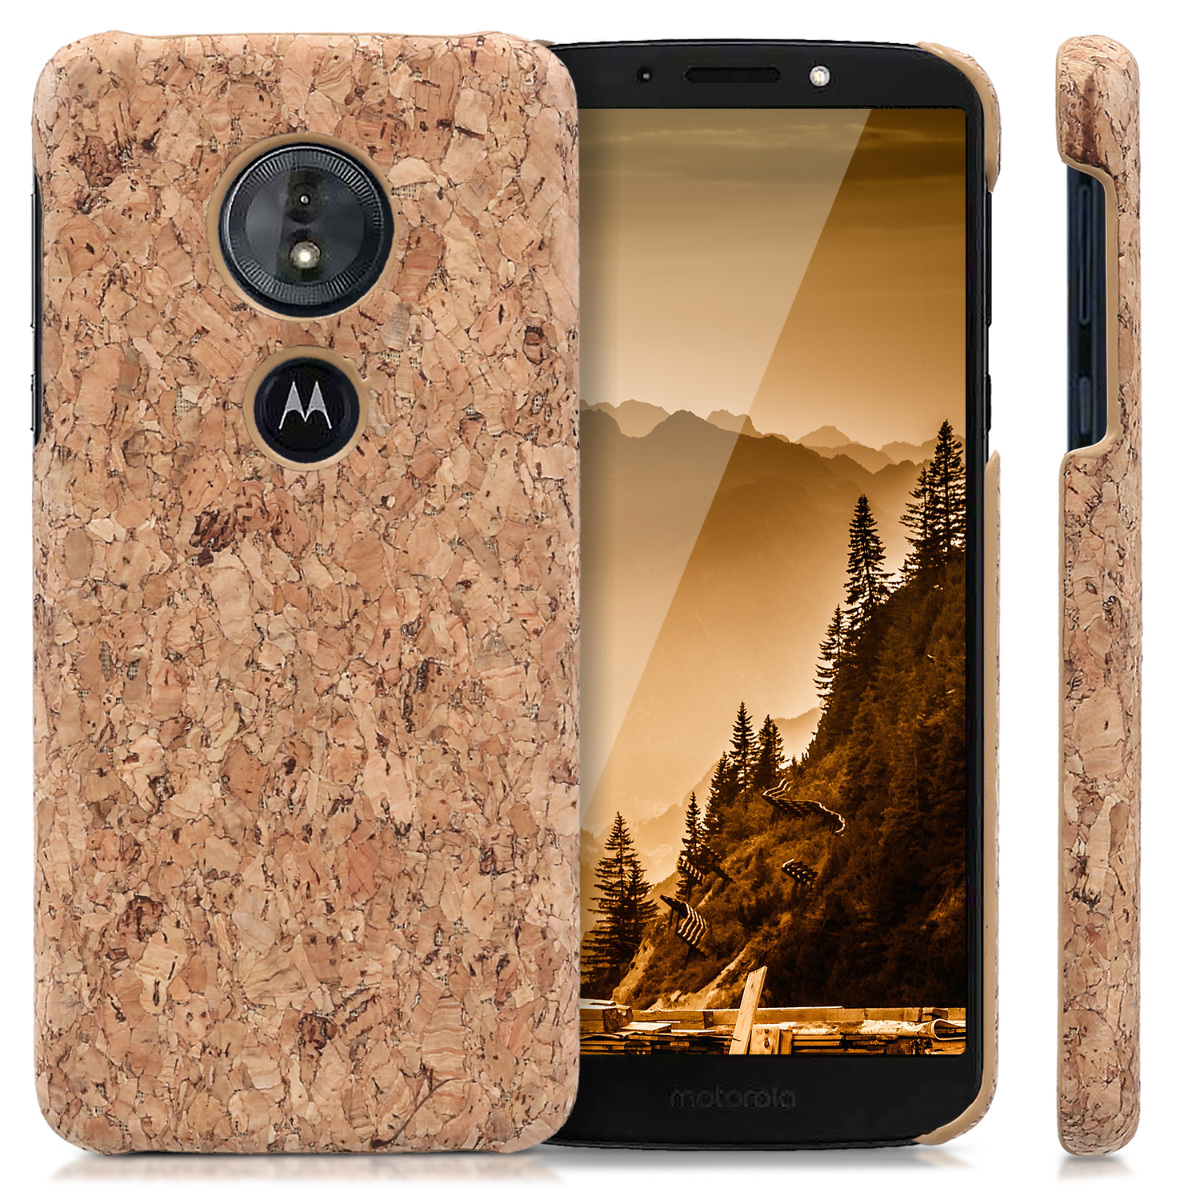 online store c6cb4 17499 Details about Cork Case for Motorola Moto G6 Play Protective Phone Cover